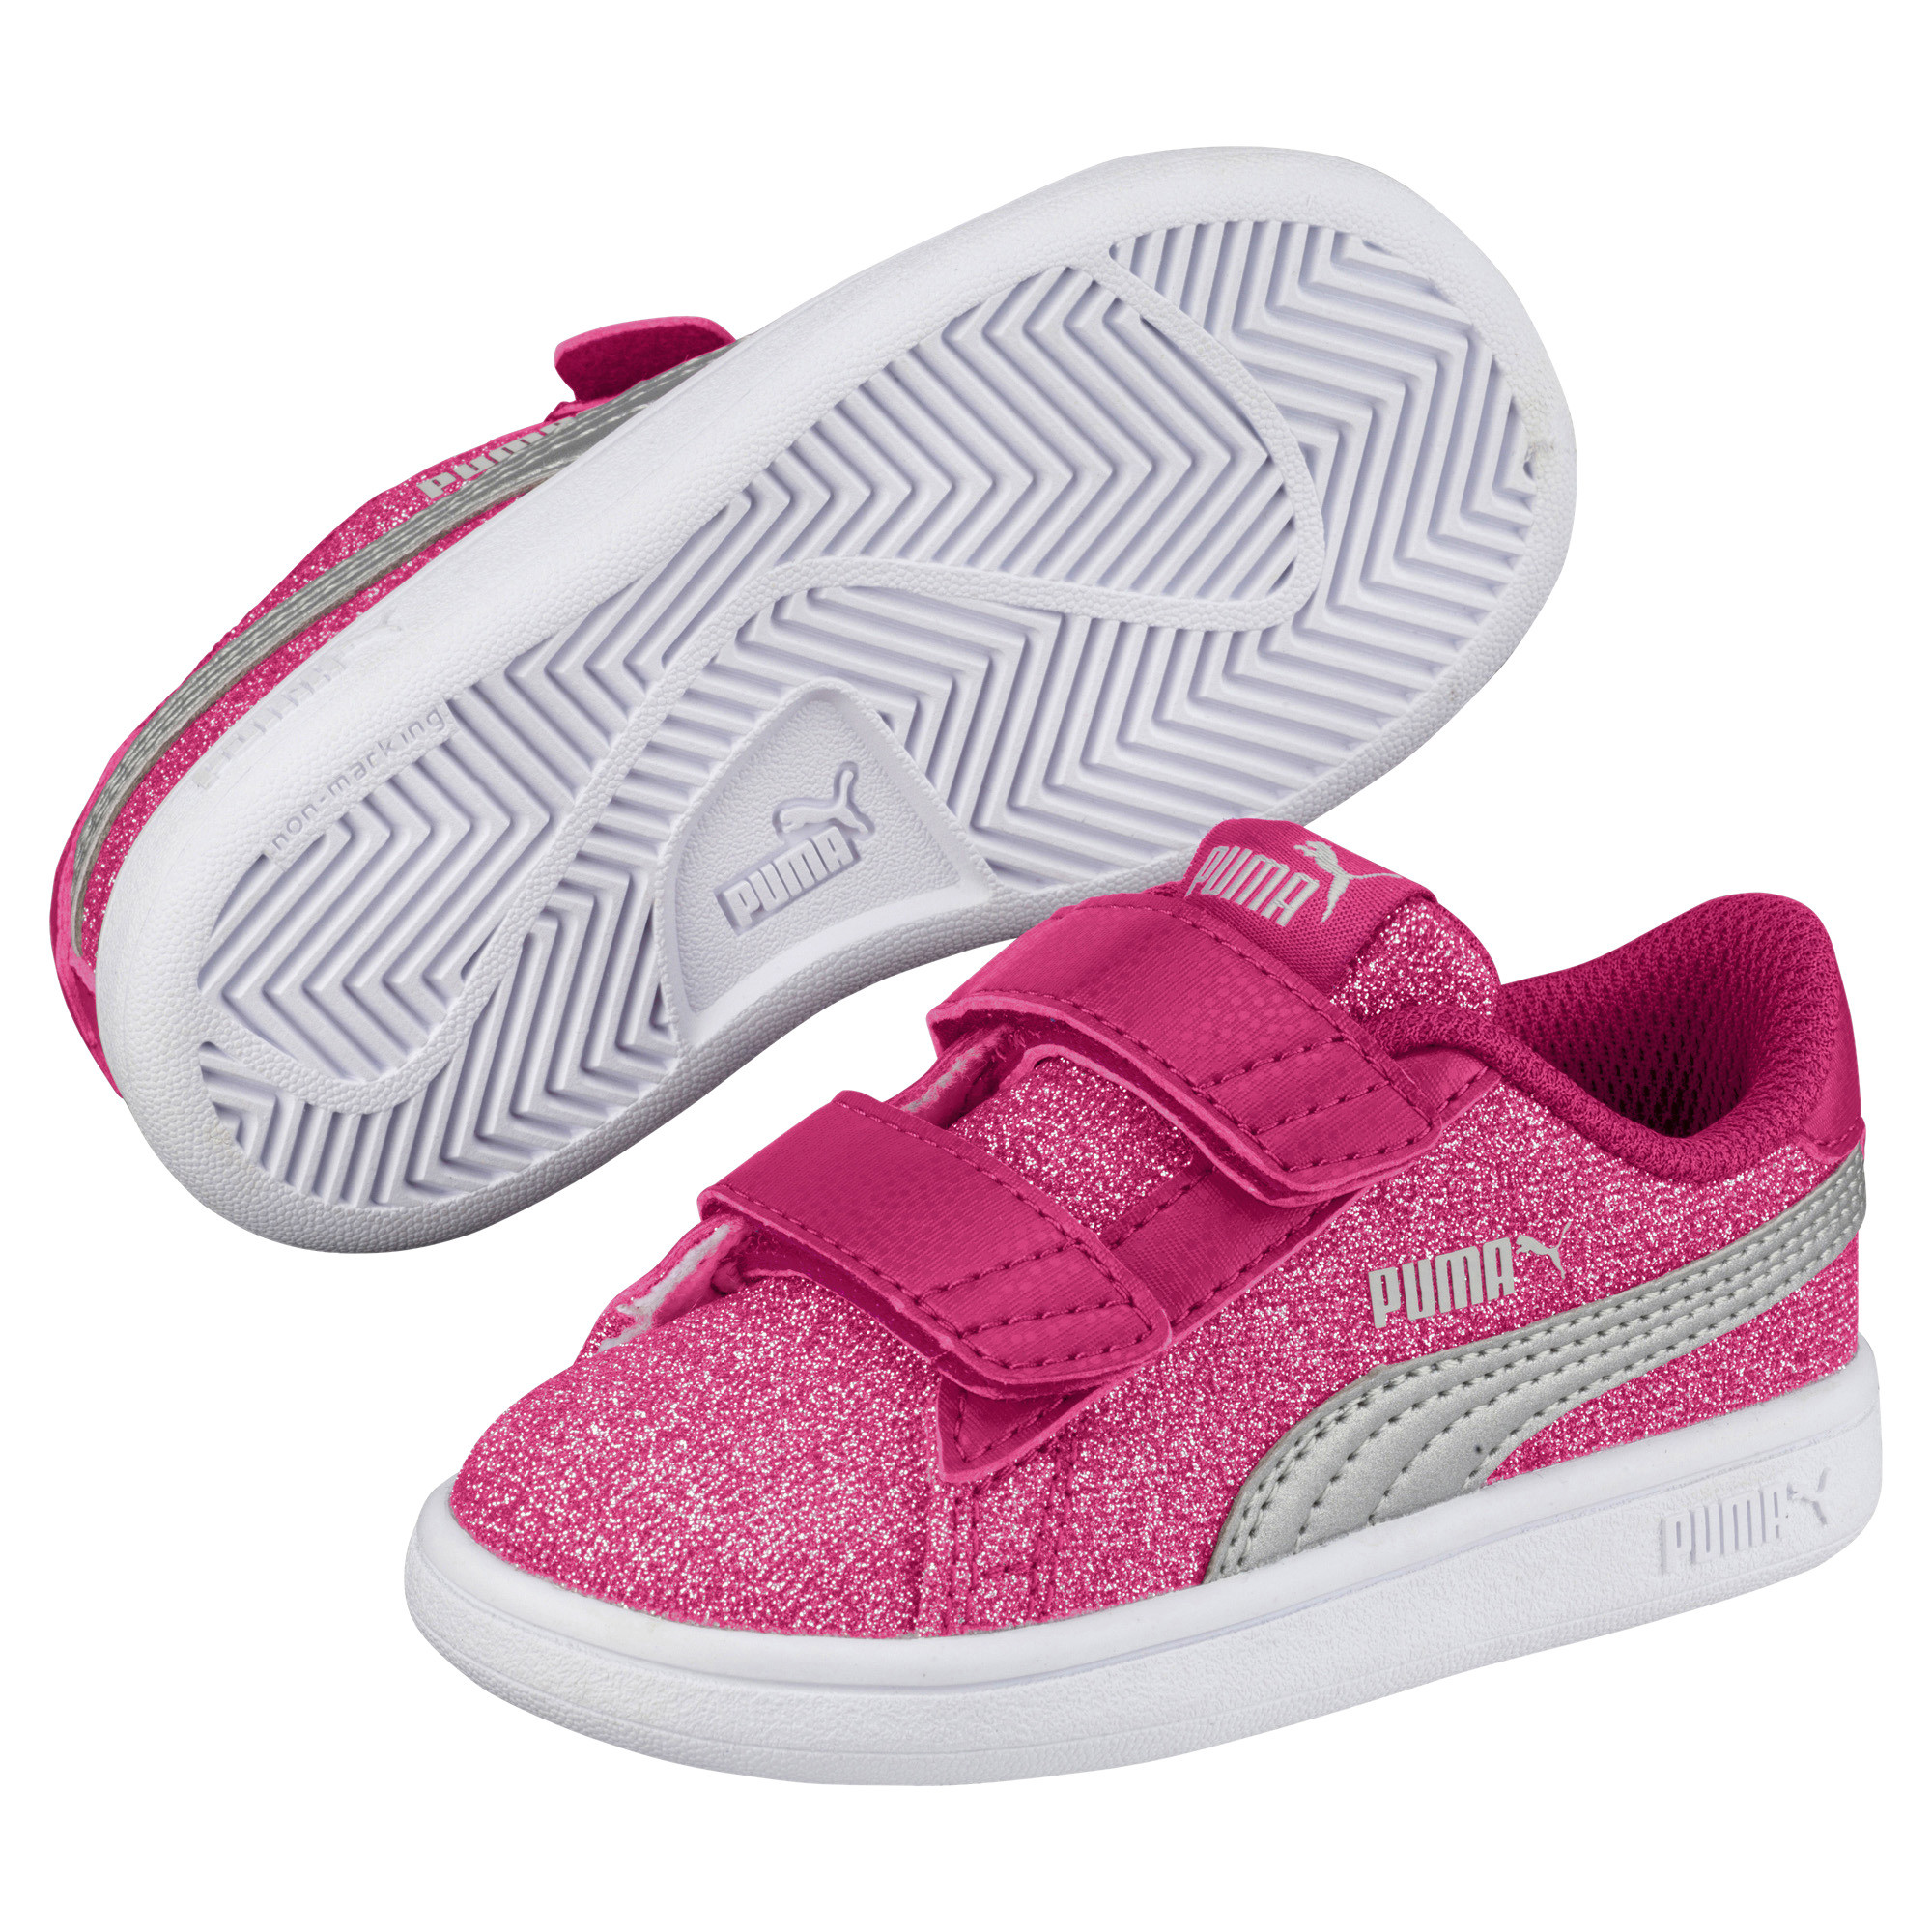 Infant Sneakers Details About Puma Smash V2 Glitz Glam V Infant Sneakers Kids Shoe Kids